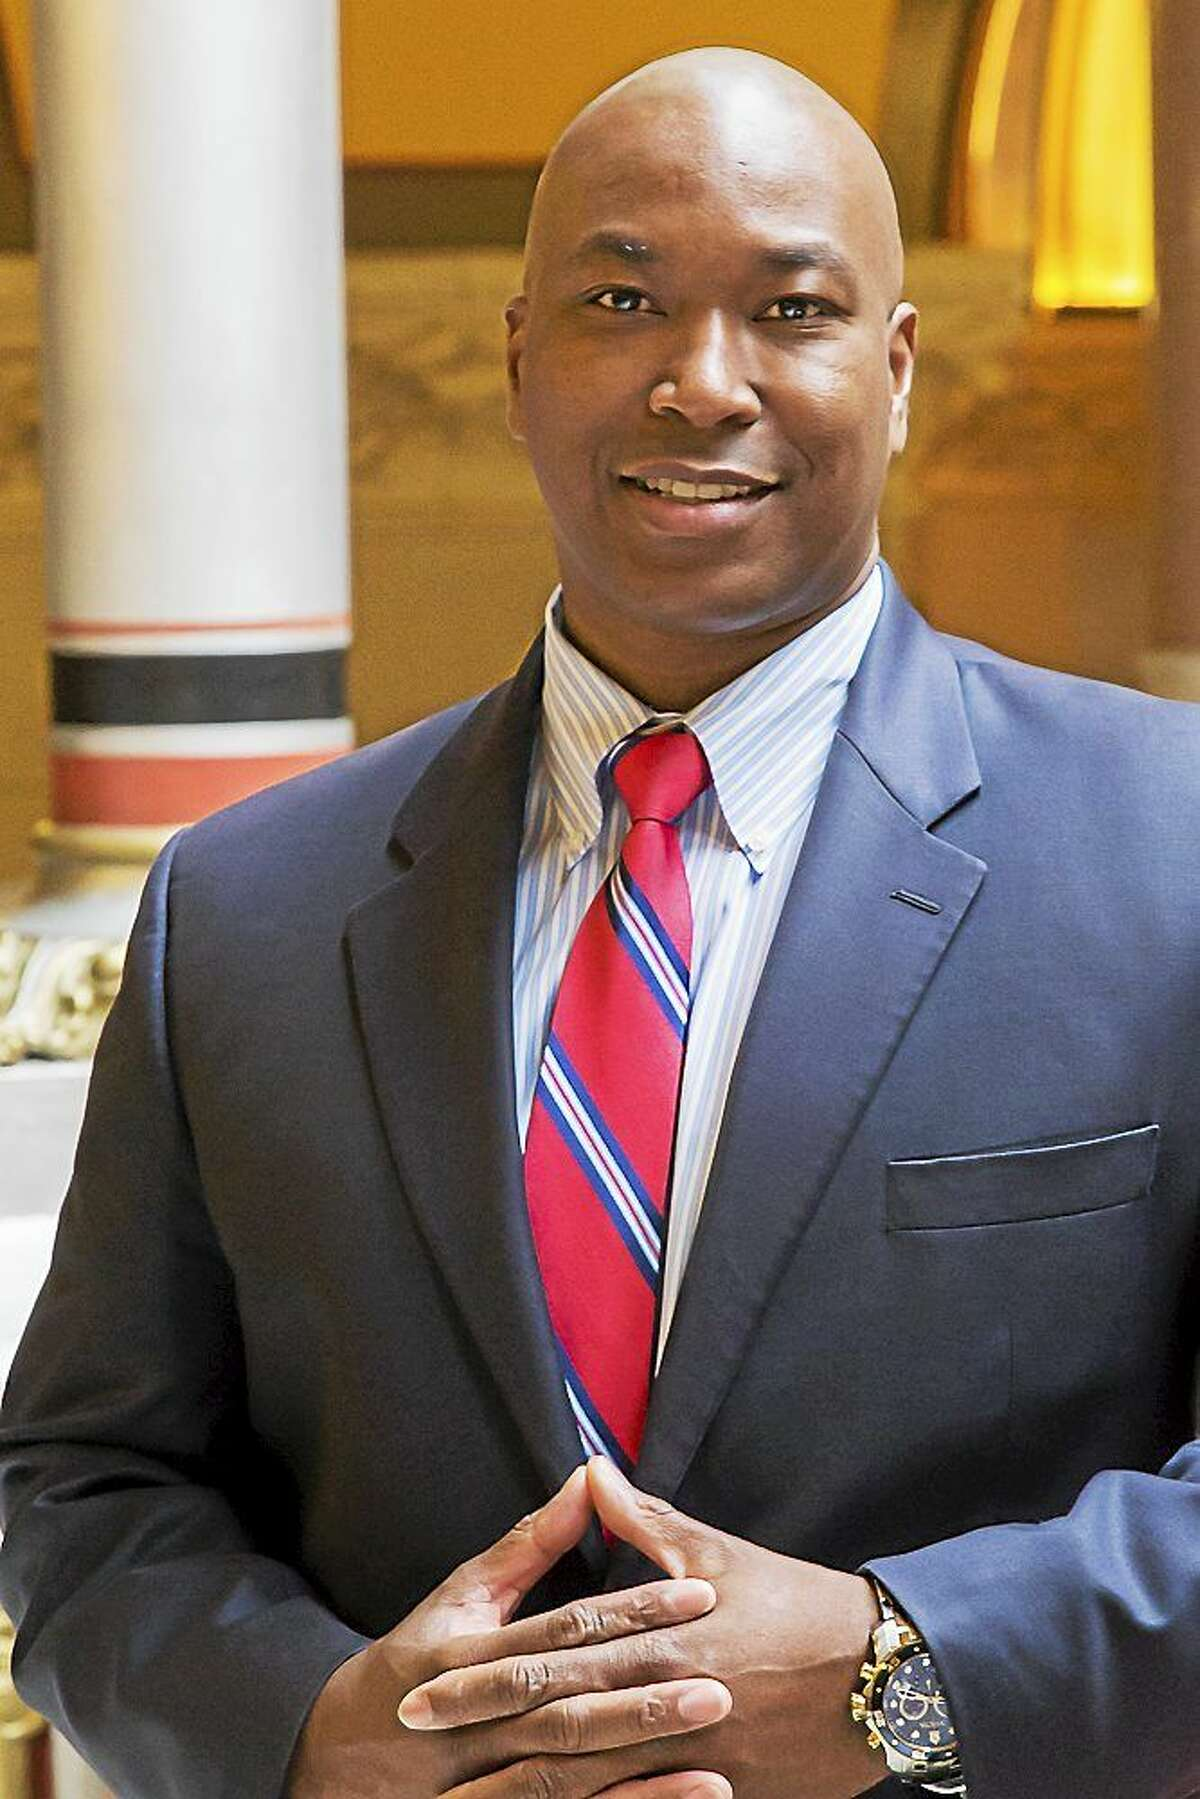 Avery Gaddis, of Waterbury, was appointed by the Connecticut Senate Republicans as the new Director of Urban Affairs.